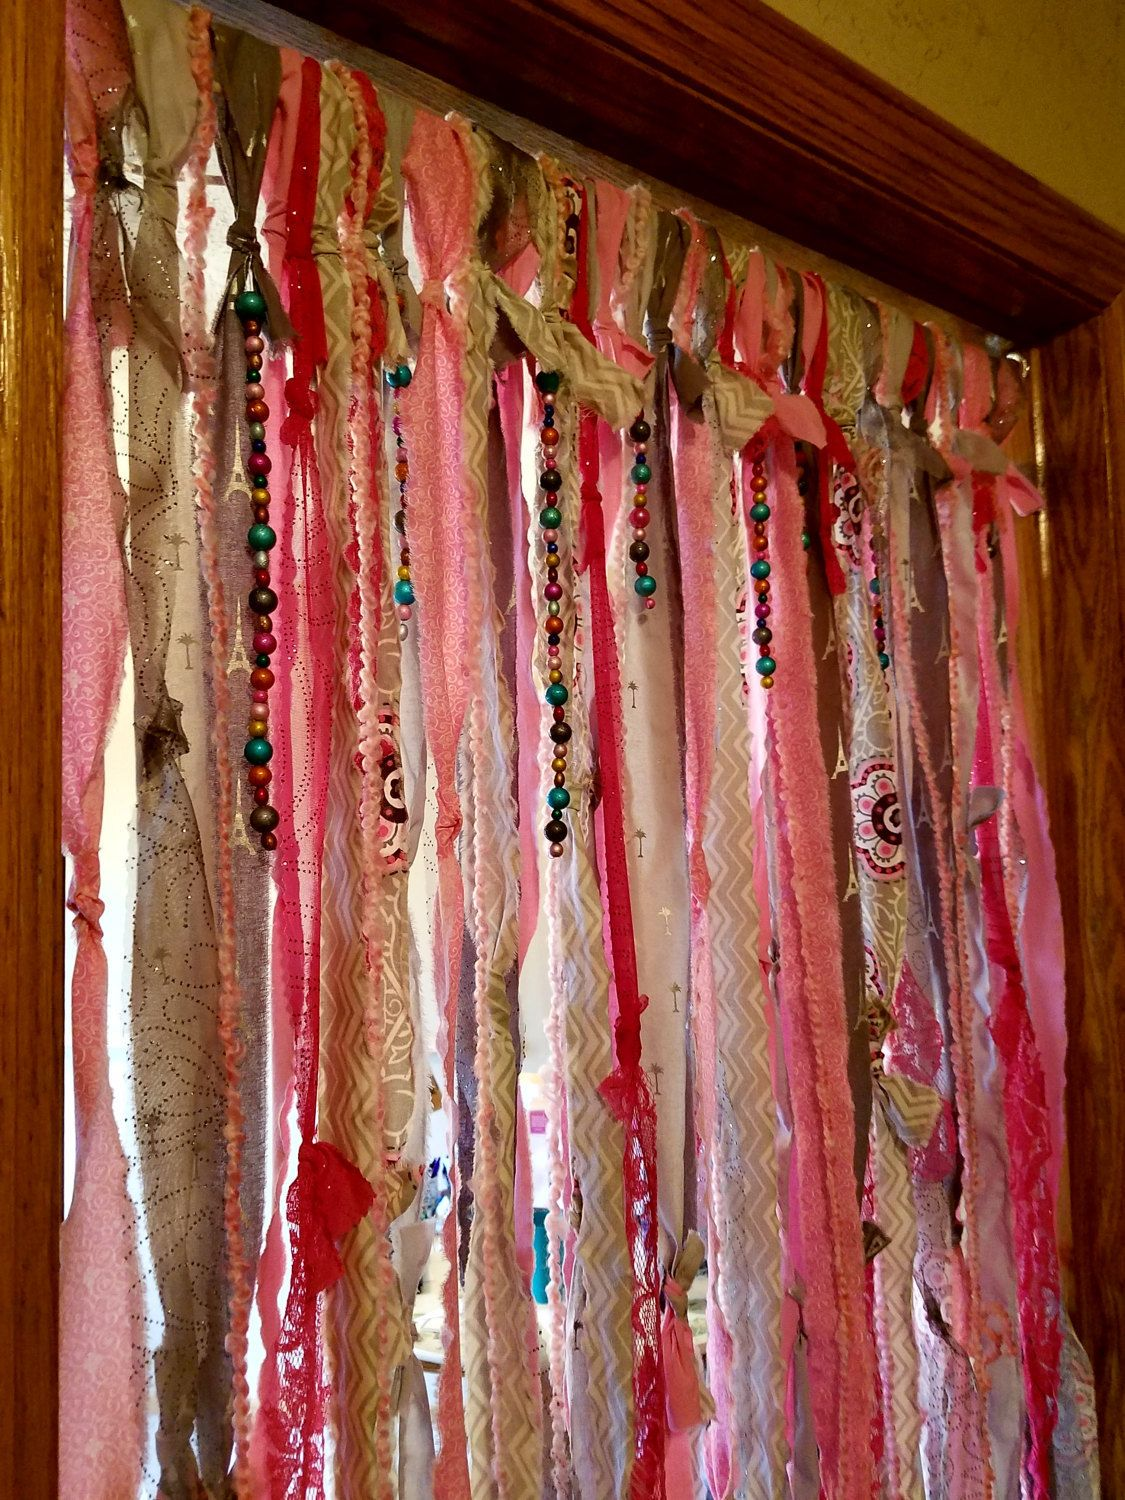 Genial Boho Curtains Door Curtains Gypsy Curtains Closet Door Curtain Pink Silver  Gray By HummingbirdandEagle On Etsy